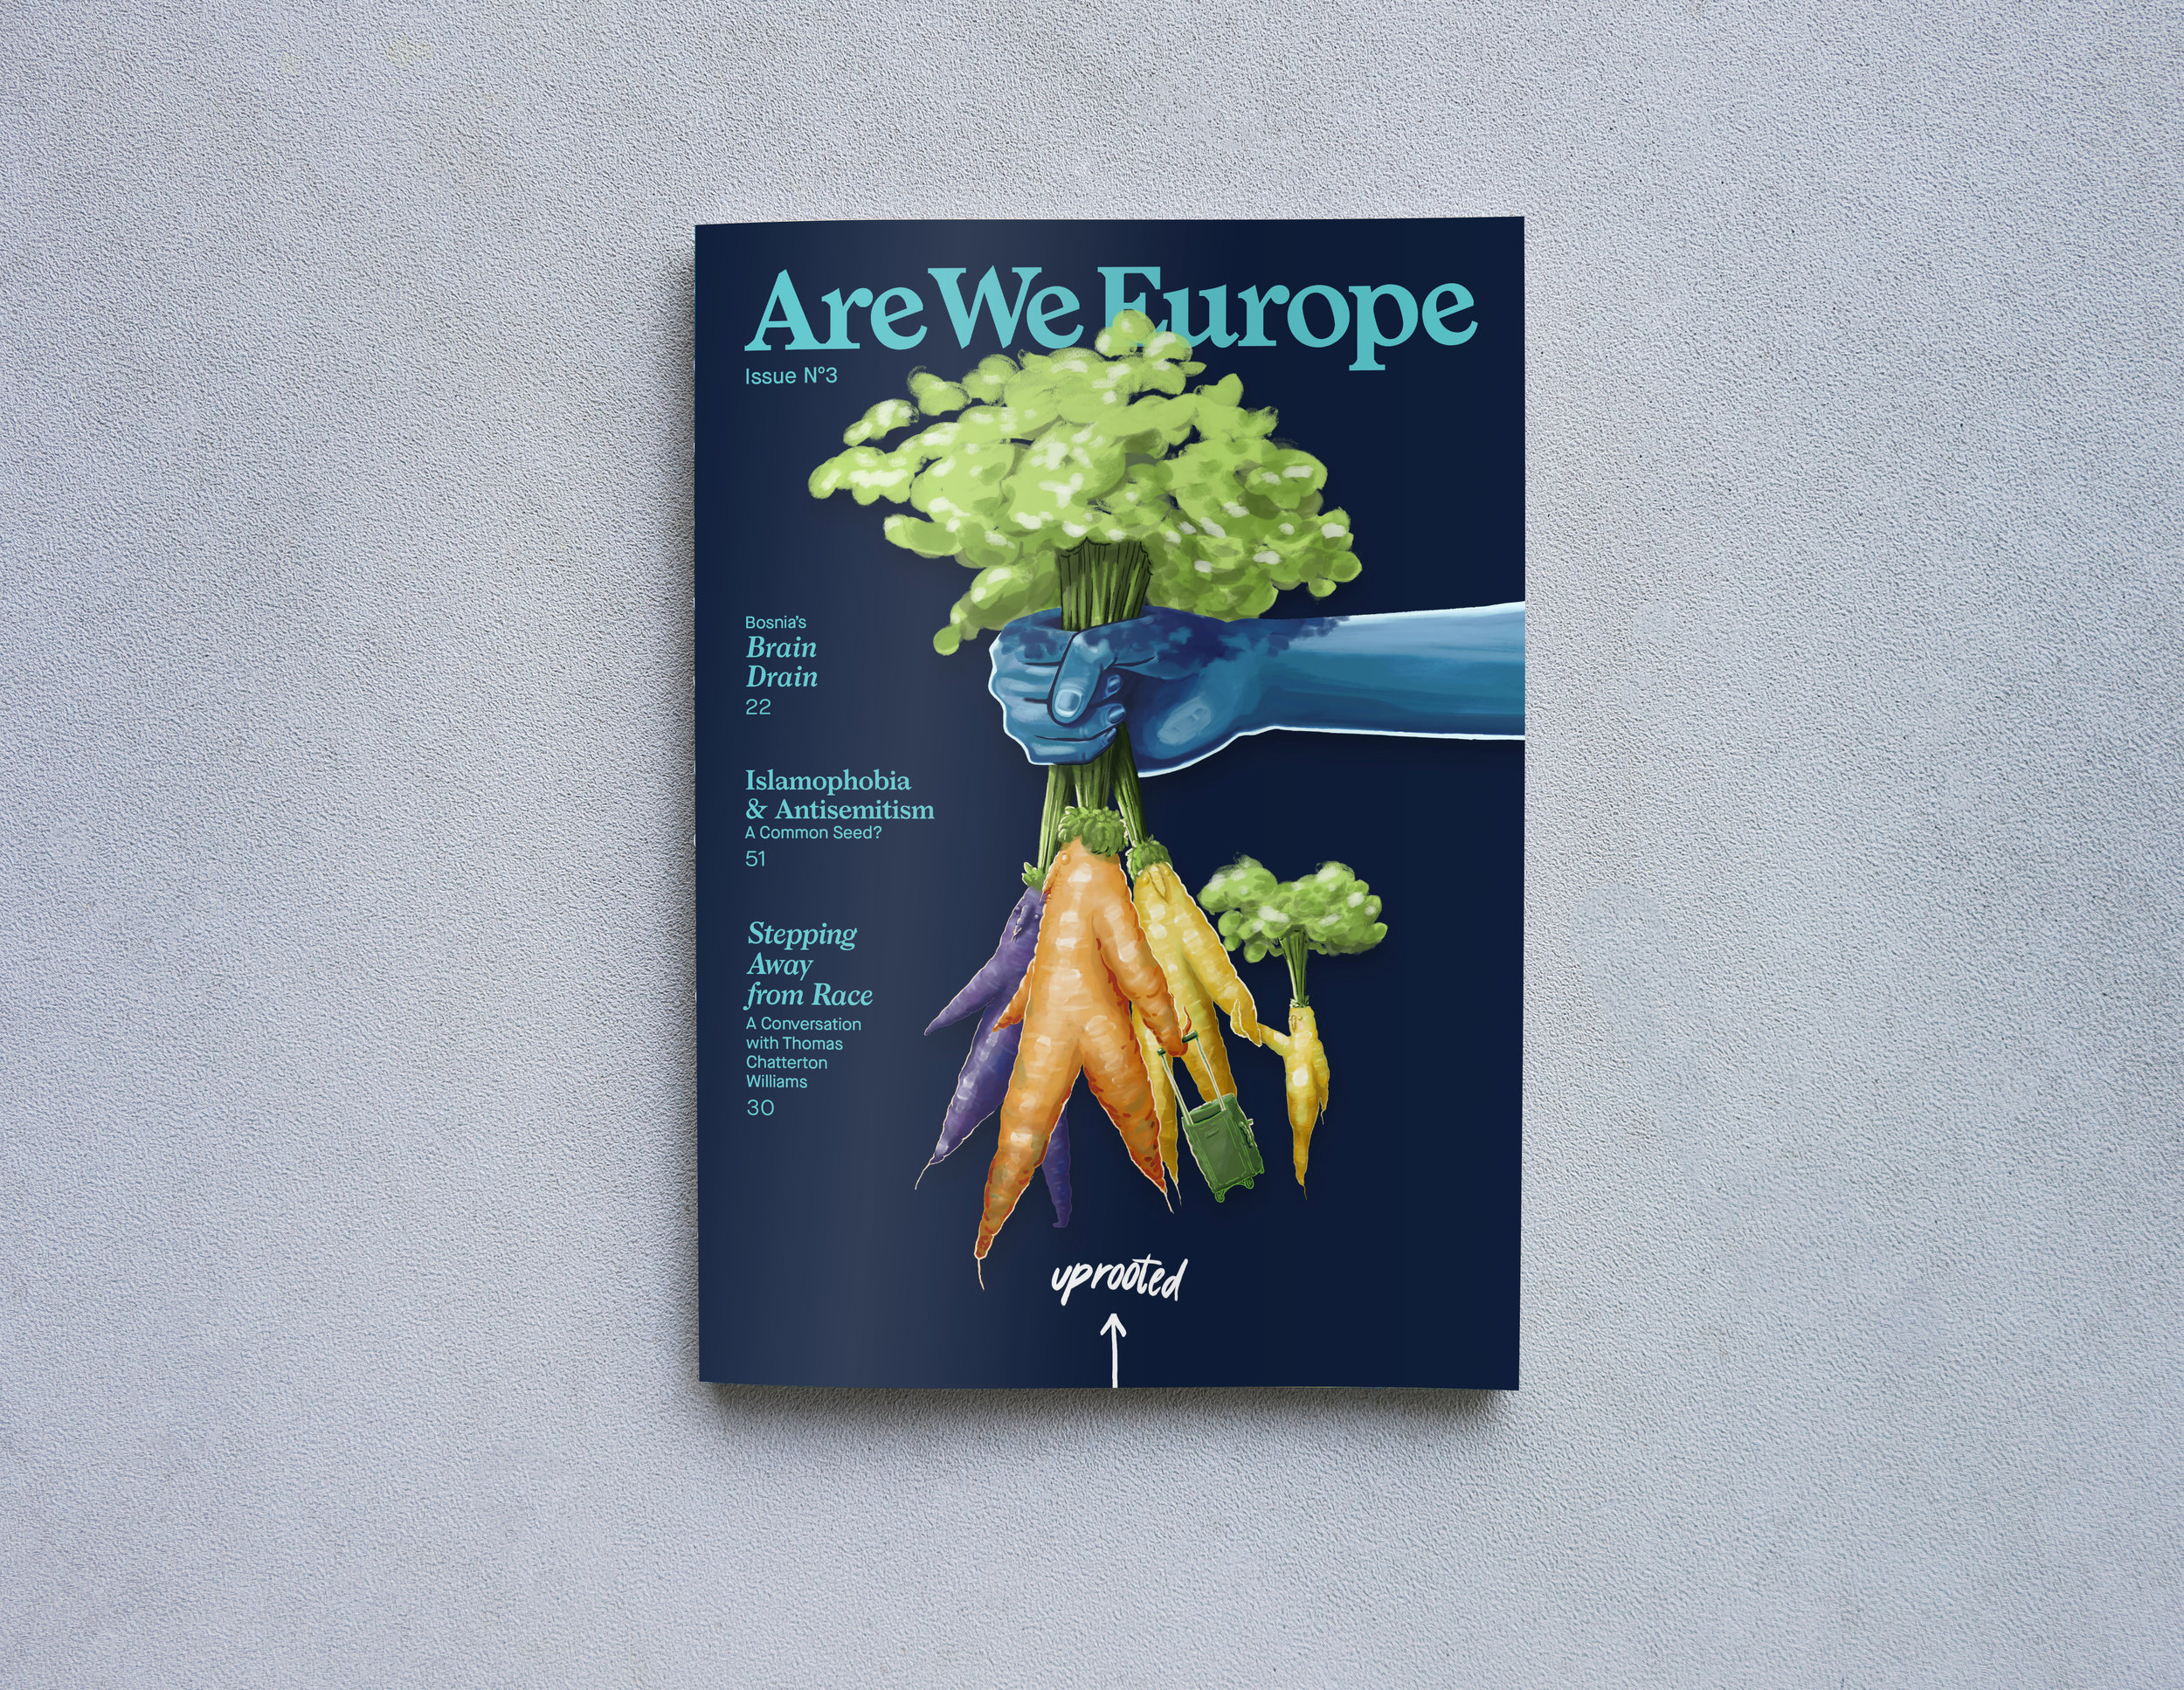 Institutional subscriptions - 4 print issues of ARE WE EUROPE Magazine per year, delivered to you.